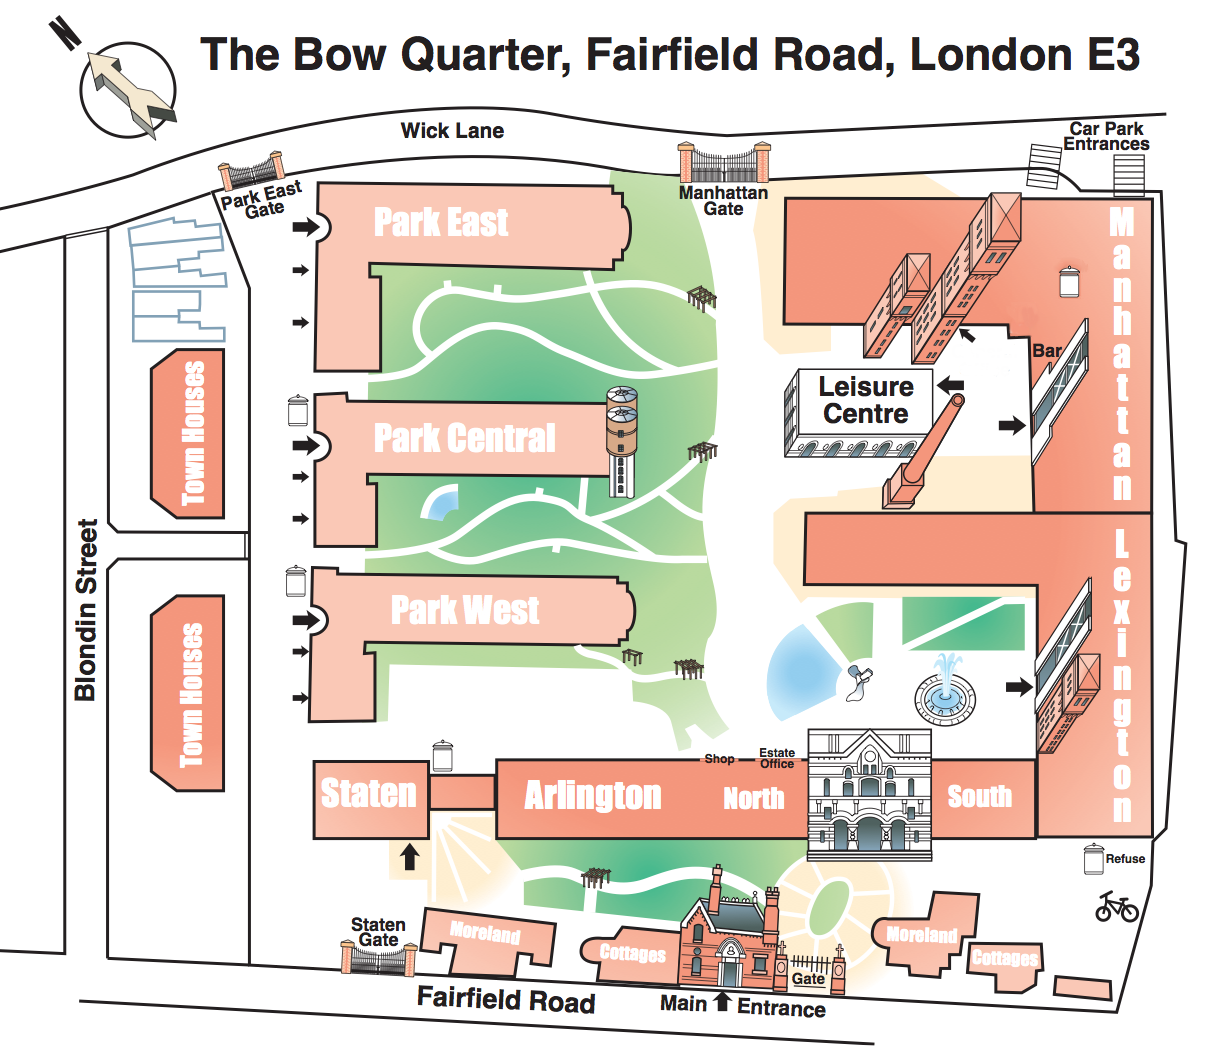 Plan of The Bow Quarter